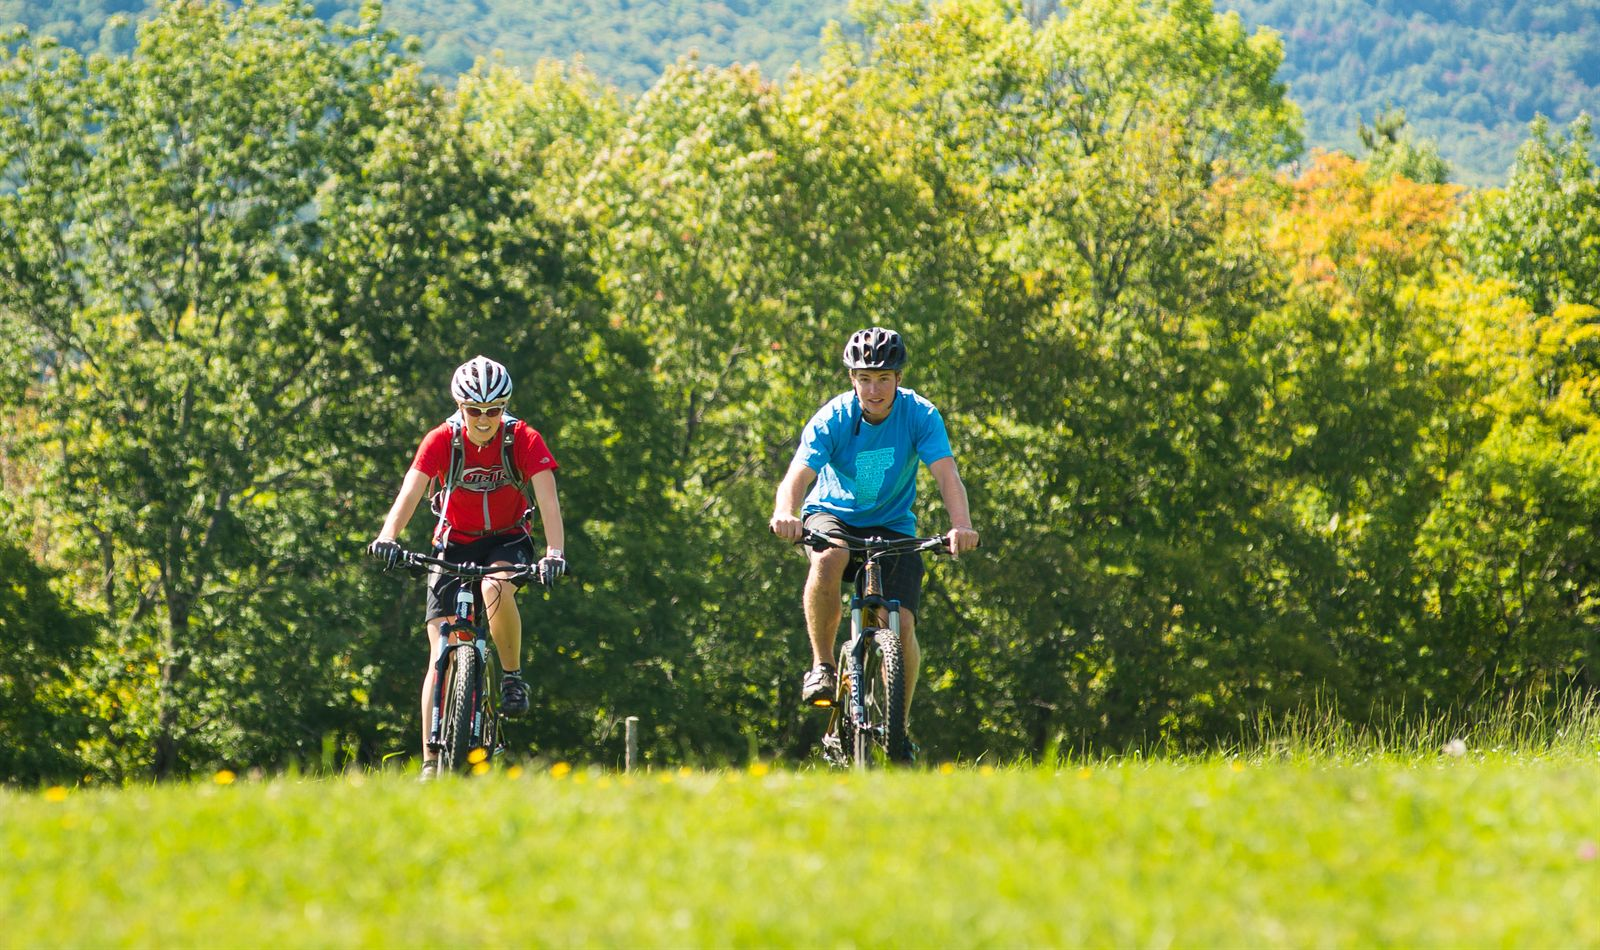 Activities at Trapp Family Lodge